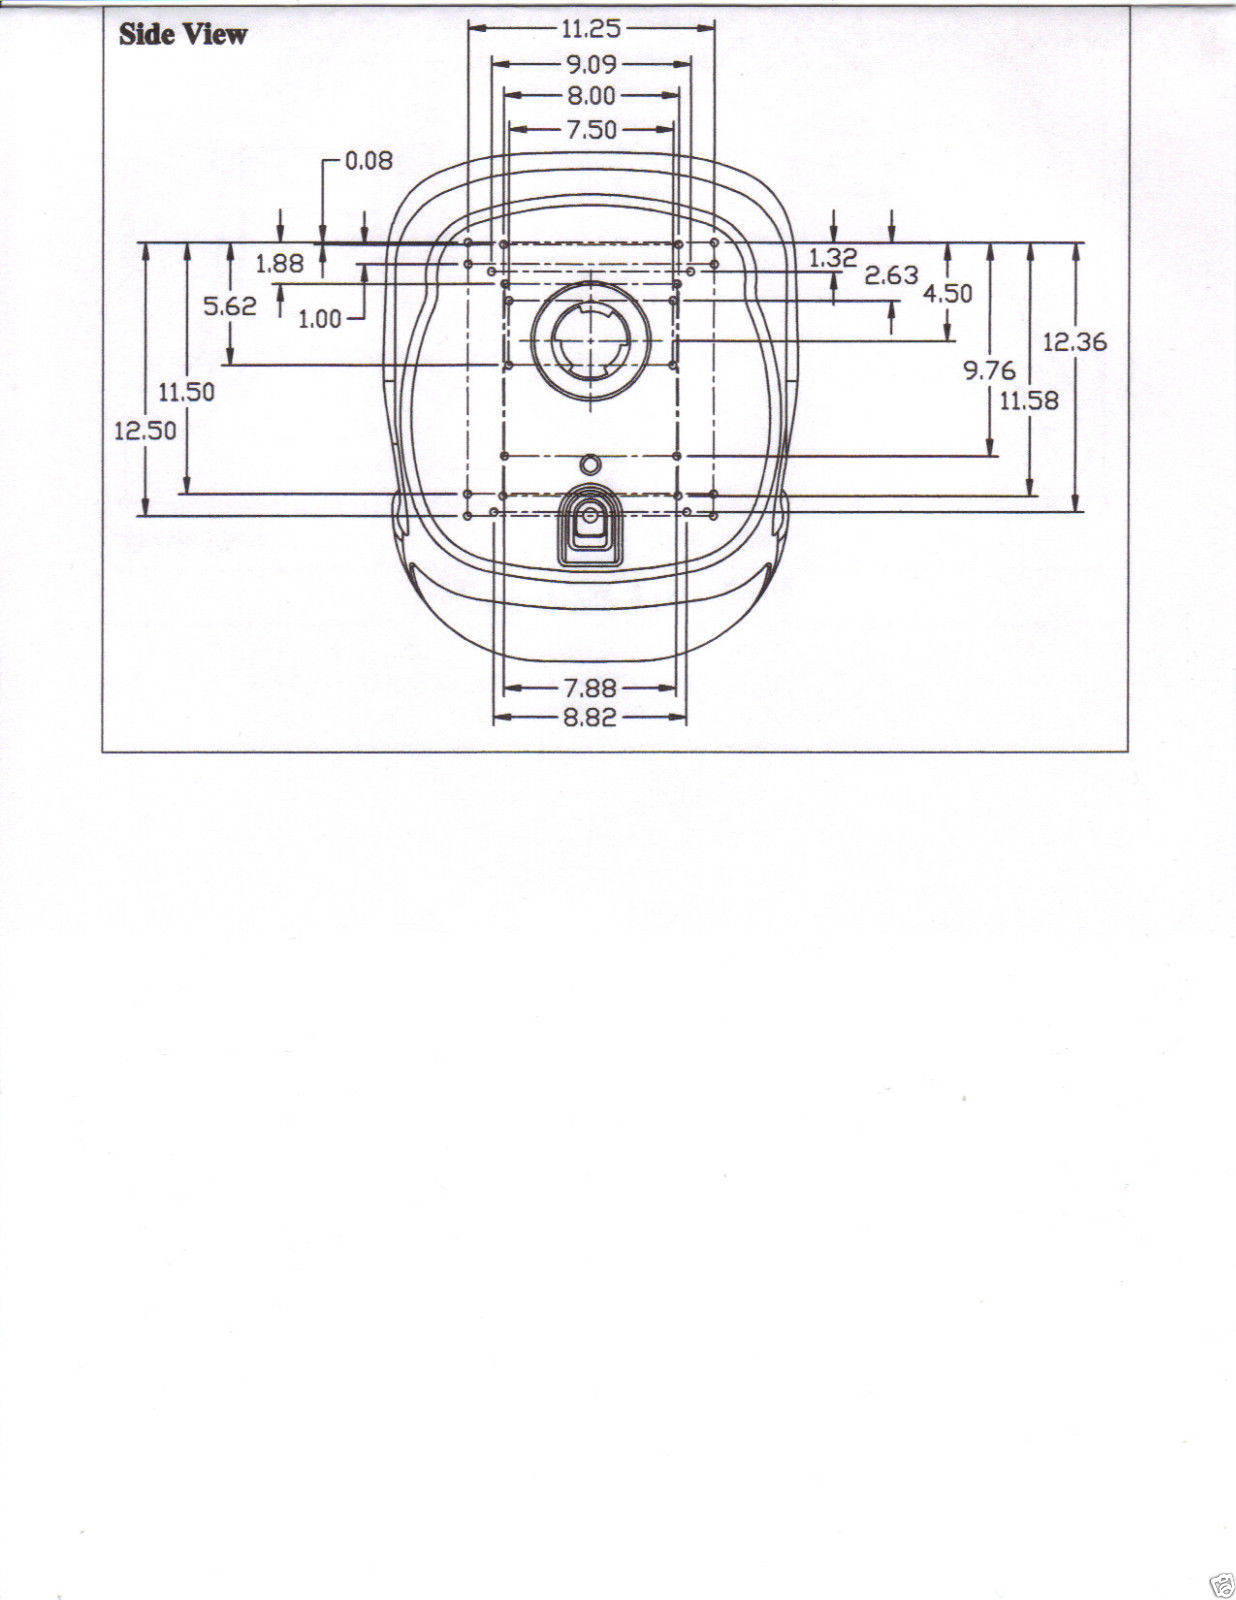 Wiring Diagram Bolens Articulator Page 2 And G174 G152 Tractor Hydraulic Auto Electrical Source Gray Seat Jacobsen Toro Dixie Chopper Zero Turn Front Mowers Ztr Eg